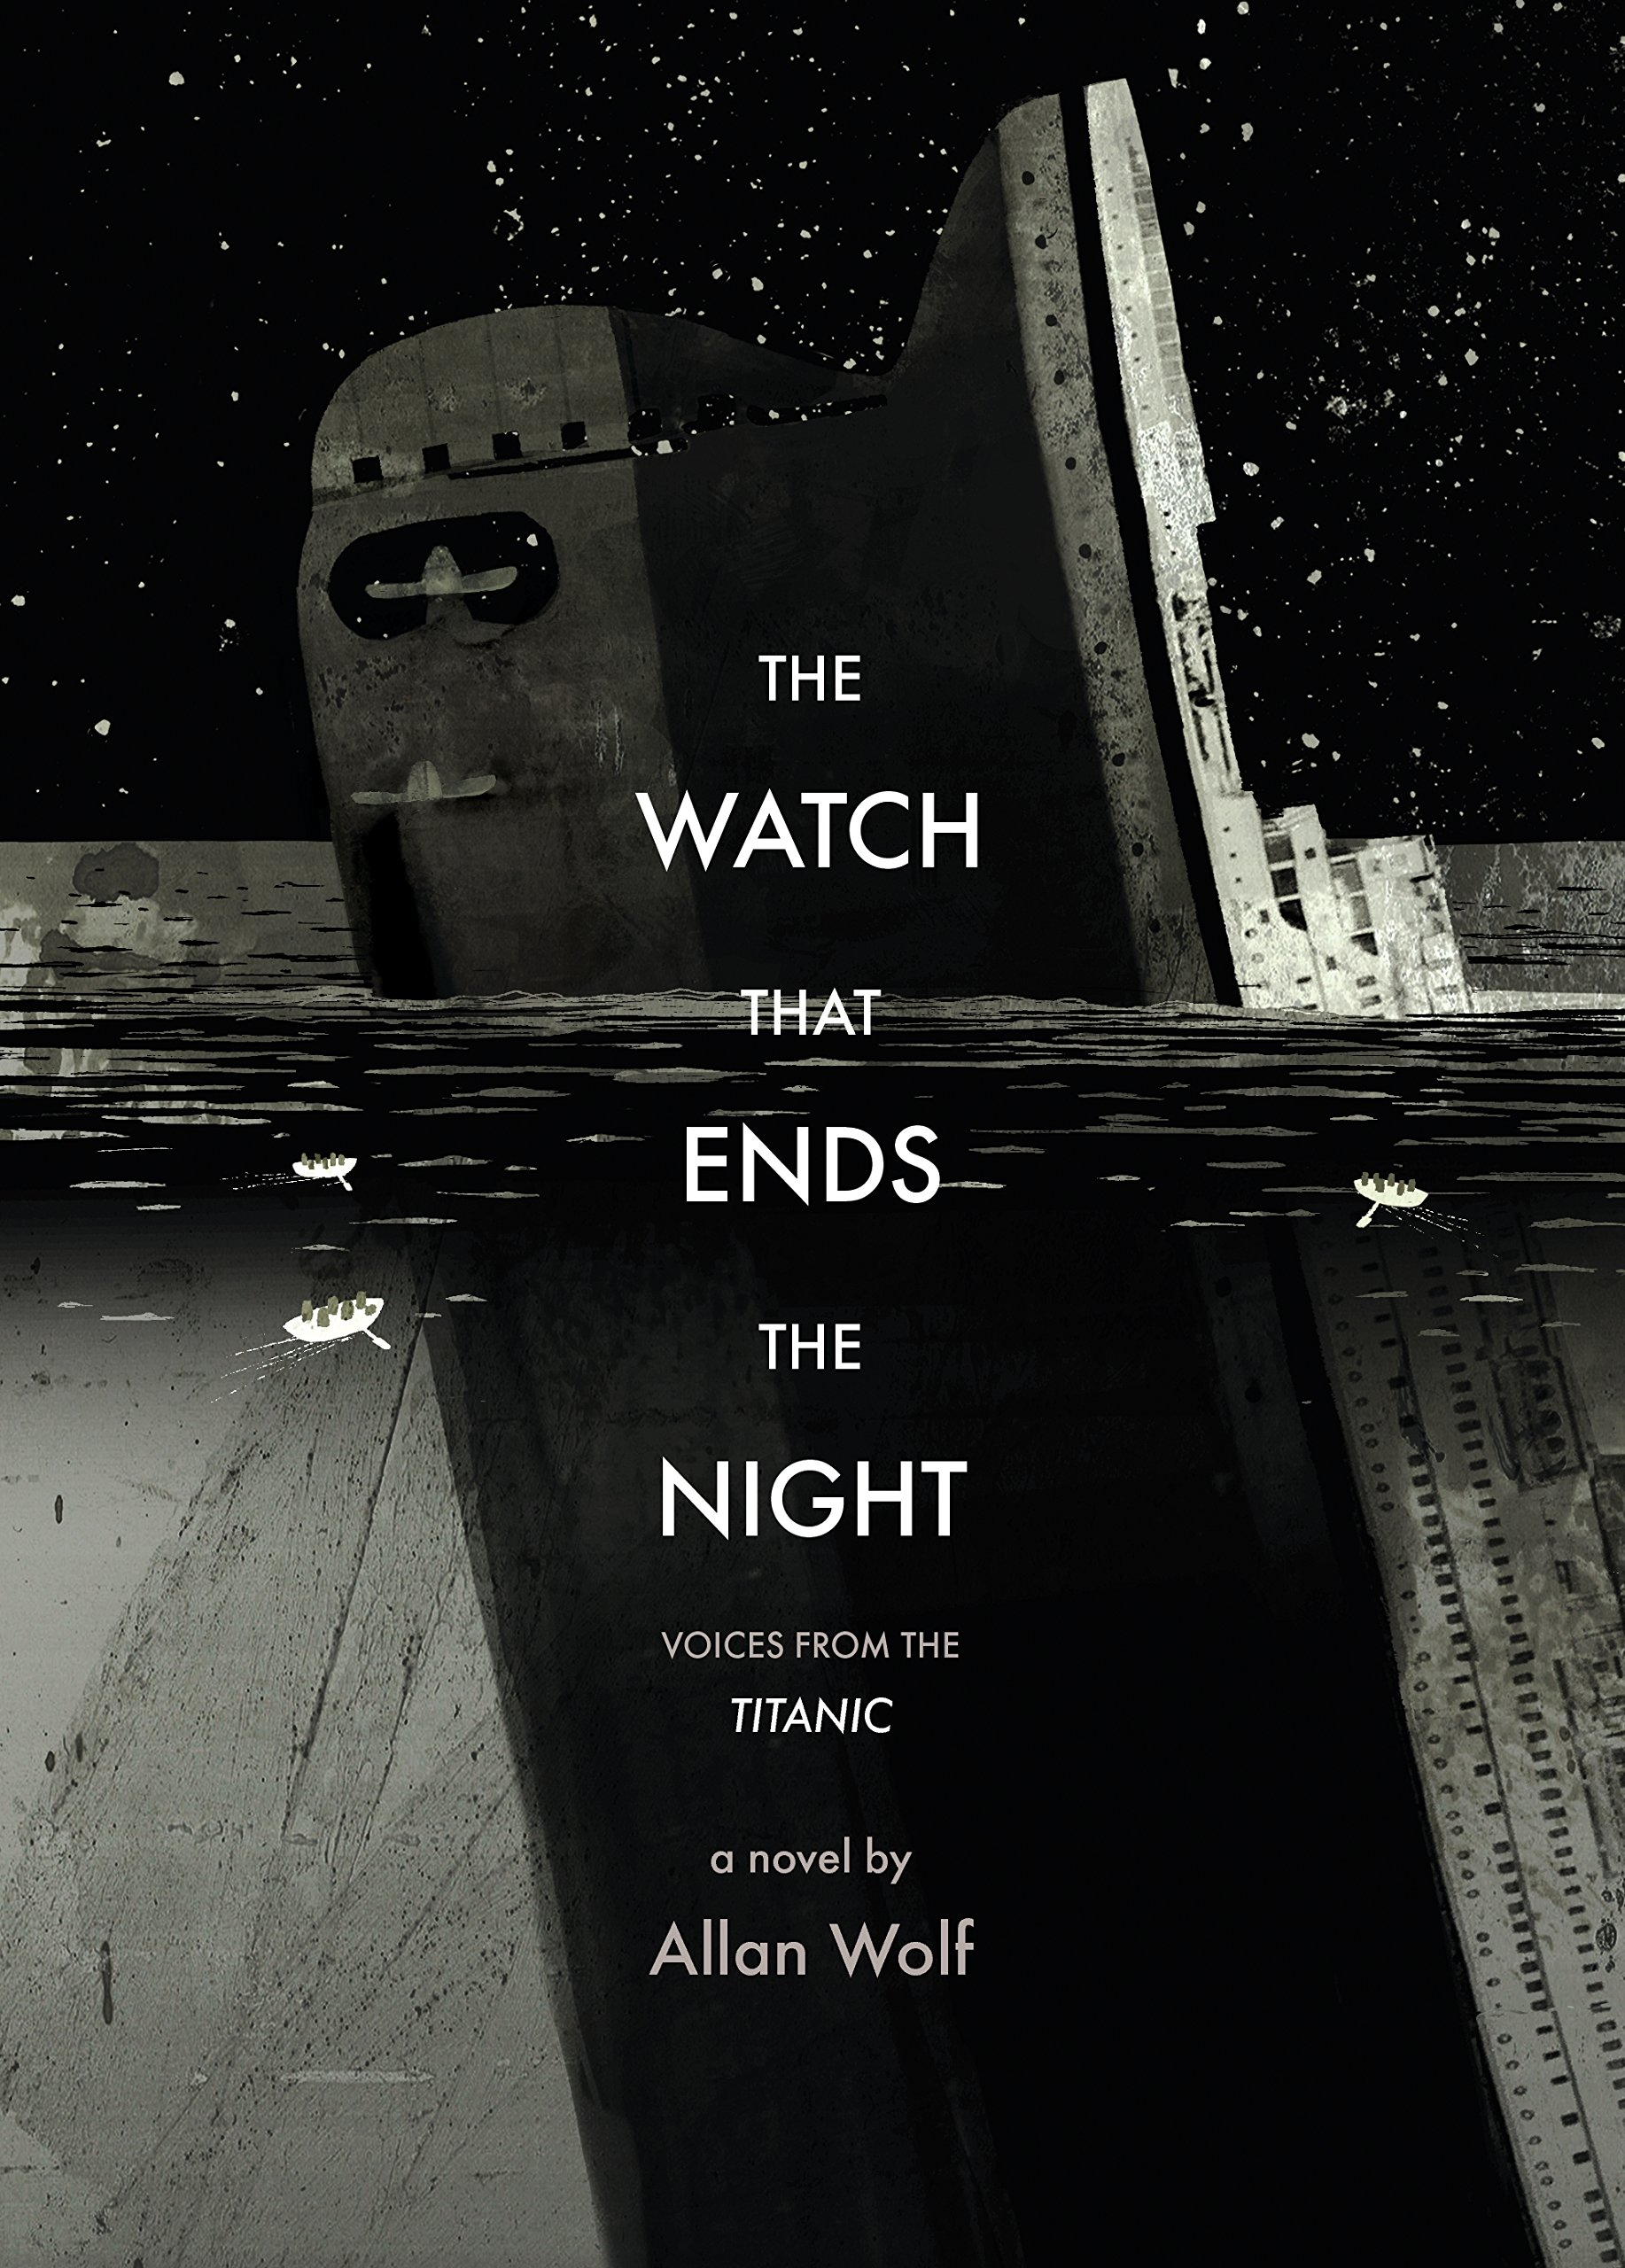 the watch that ends the night voices from the titanic by allan wolf book covers